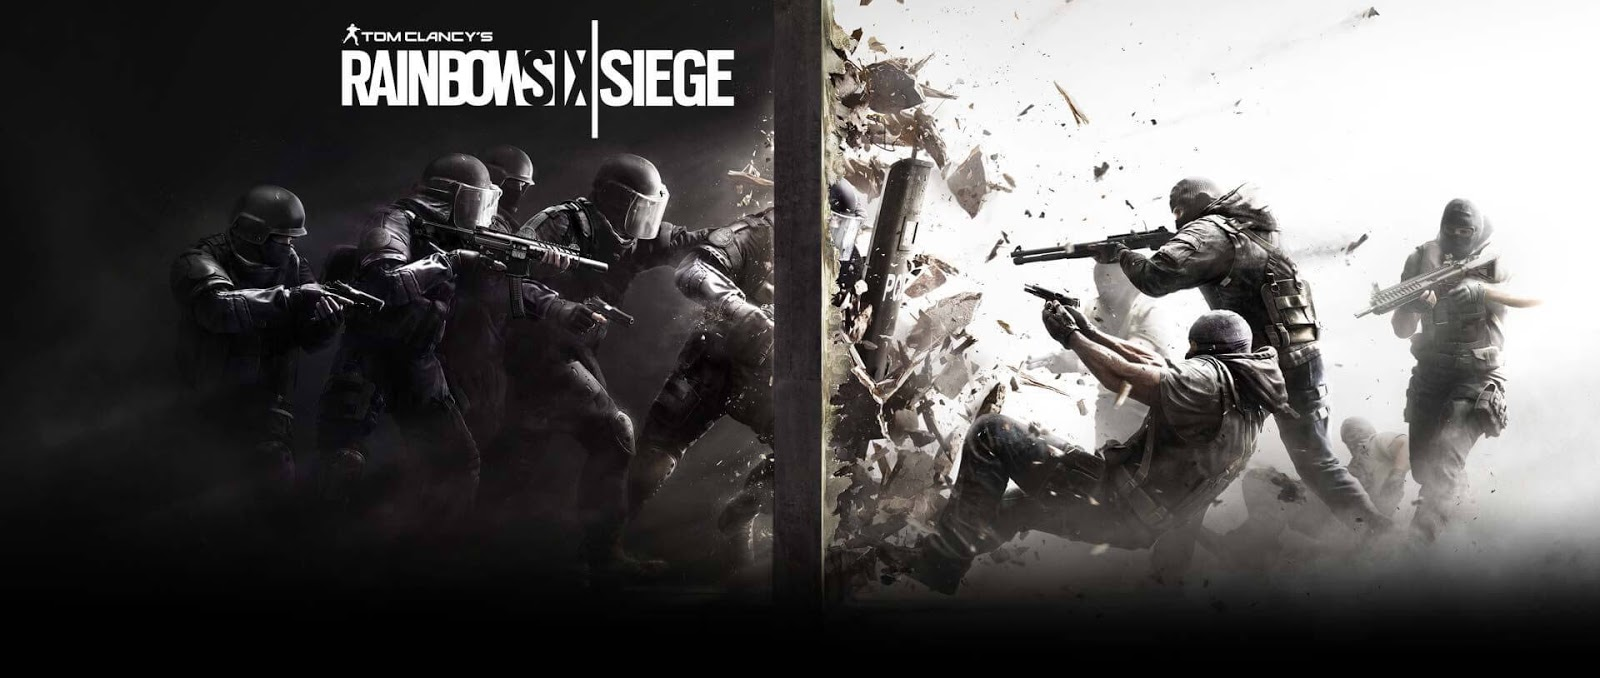 Rainbow 6 Siege Will Remove Blood, Gambling And More From Game, Players Aren't Happy